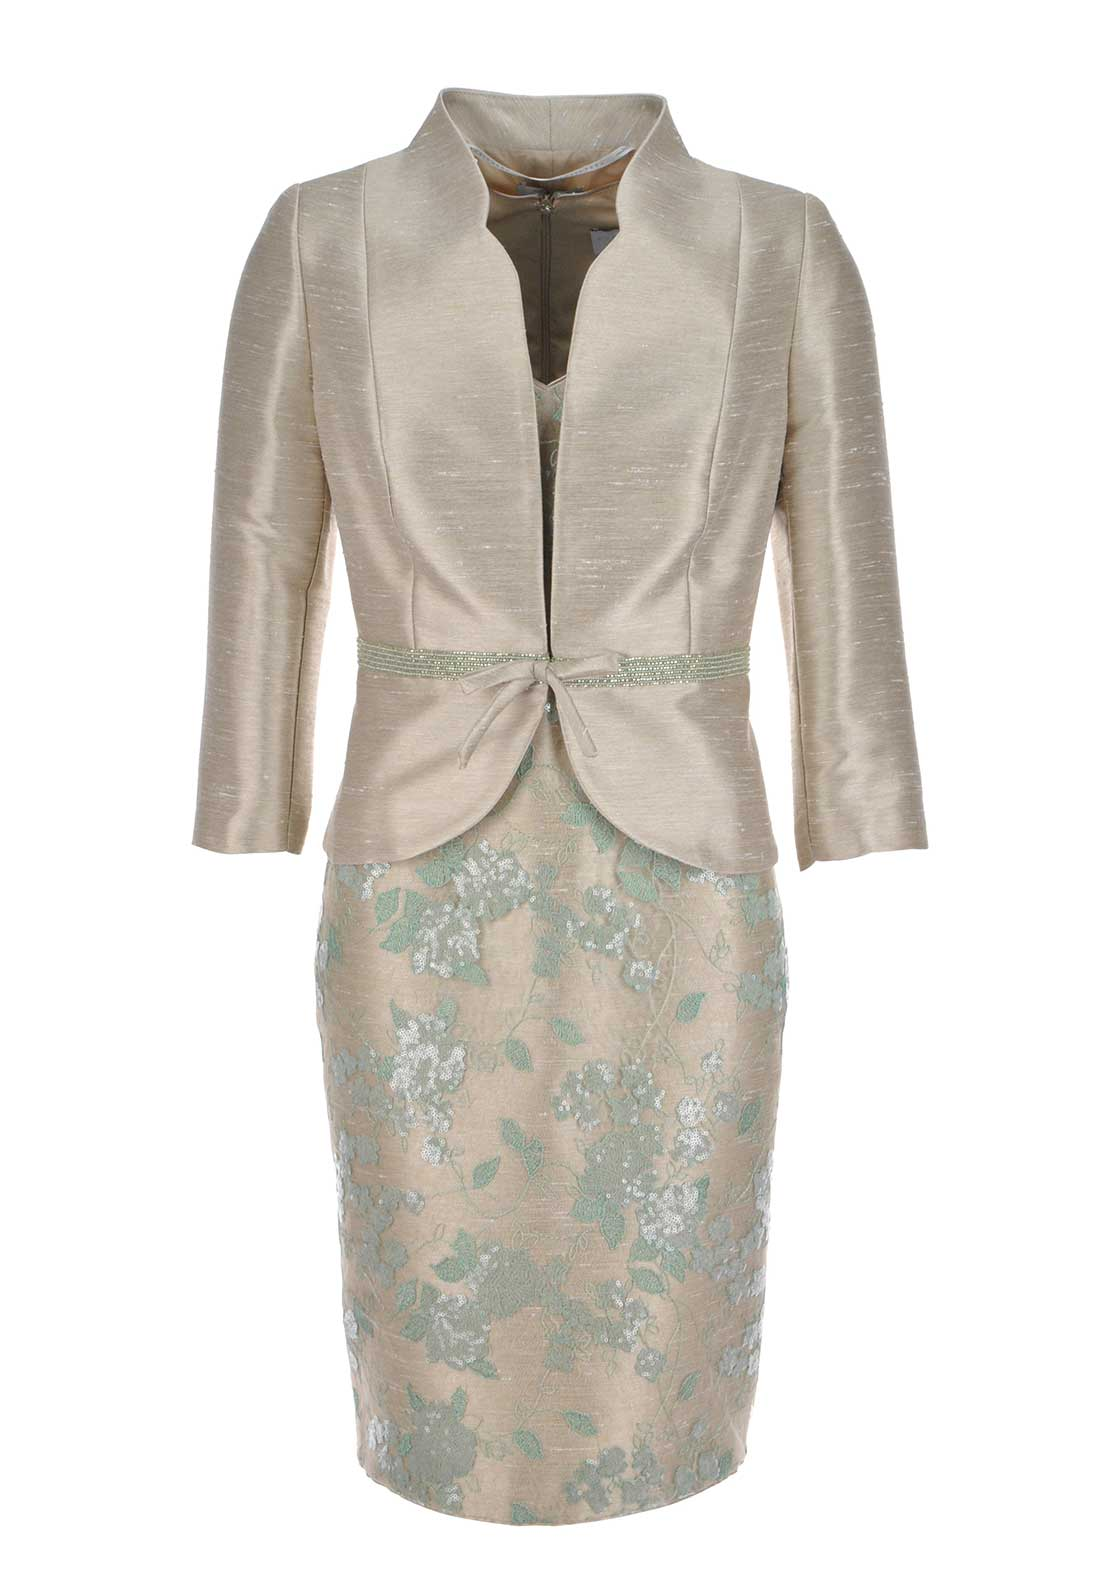 Sonia Pena Faux Raw Silk Sequin Embellished Dress and Jacket, Champagne